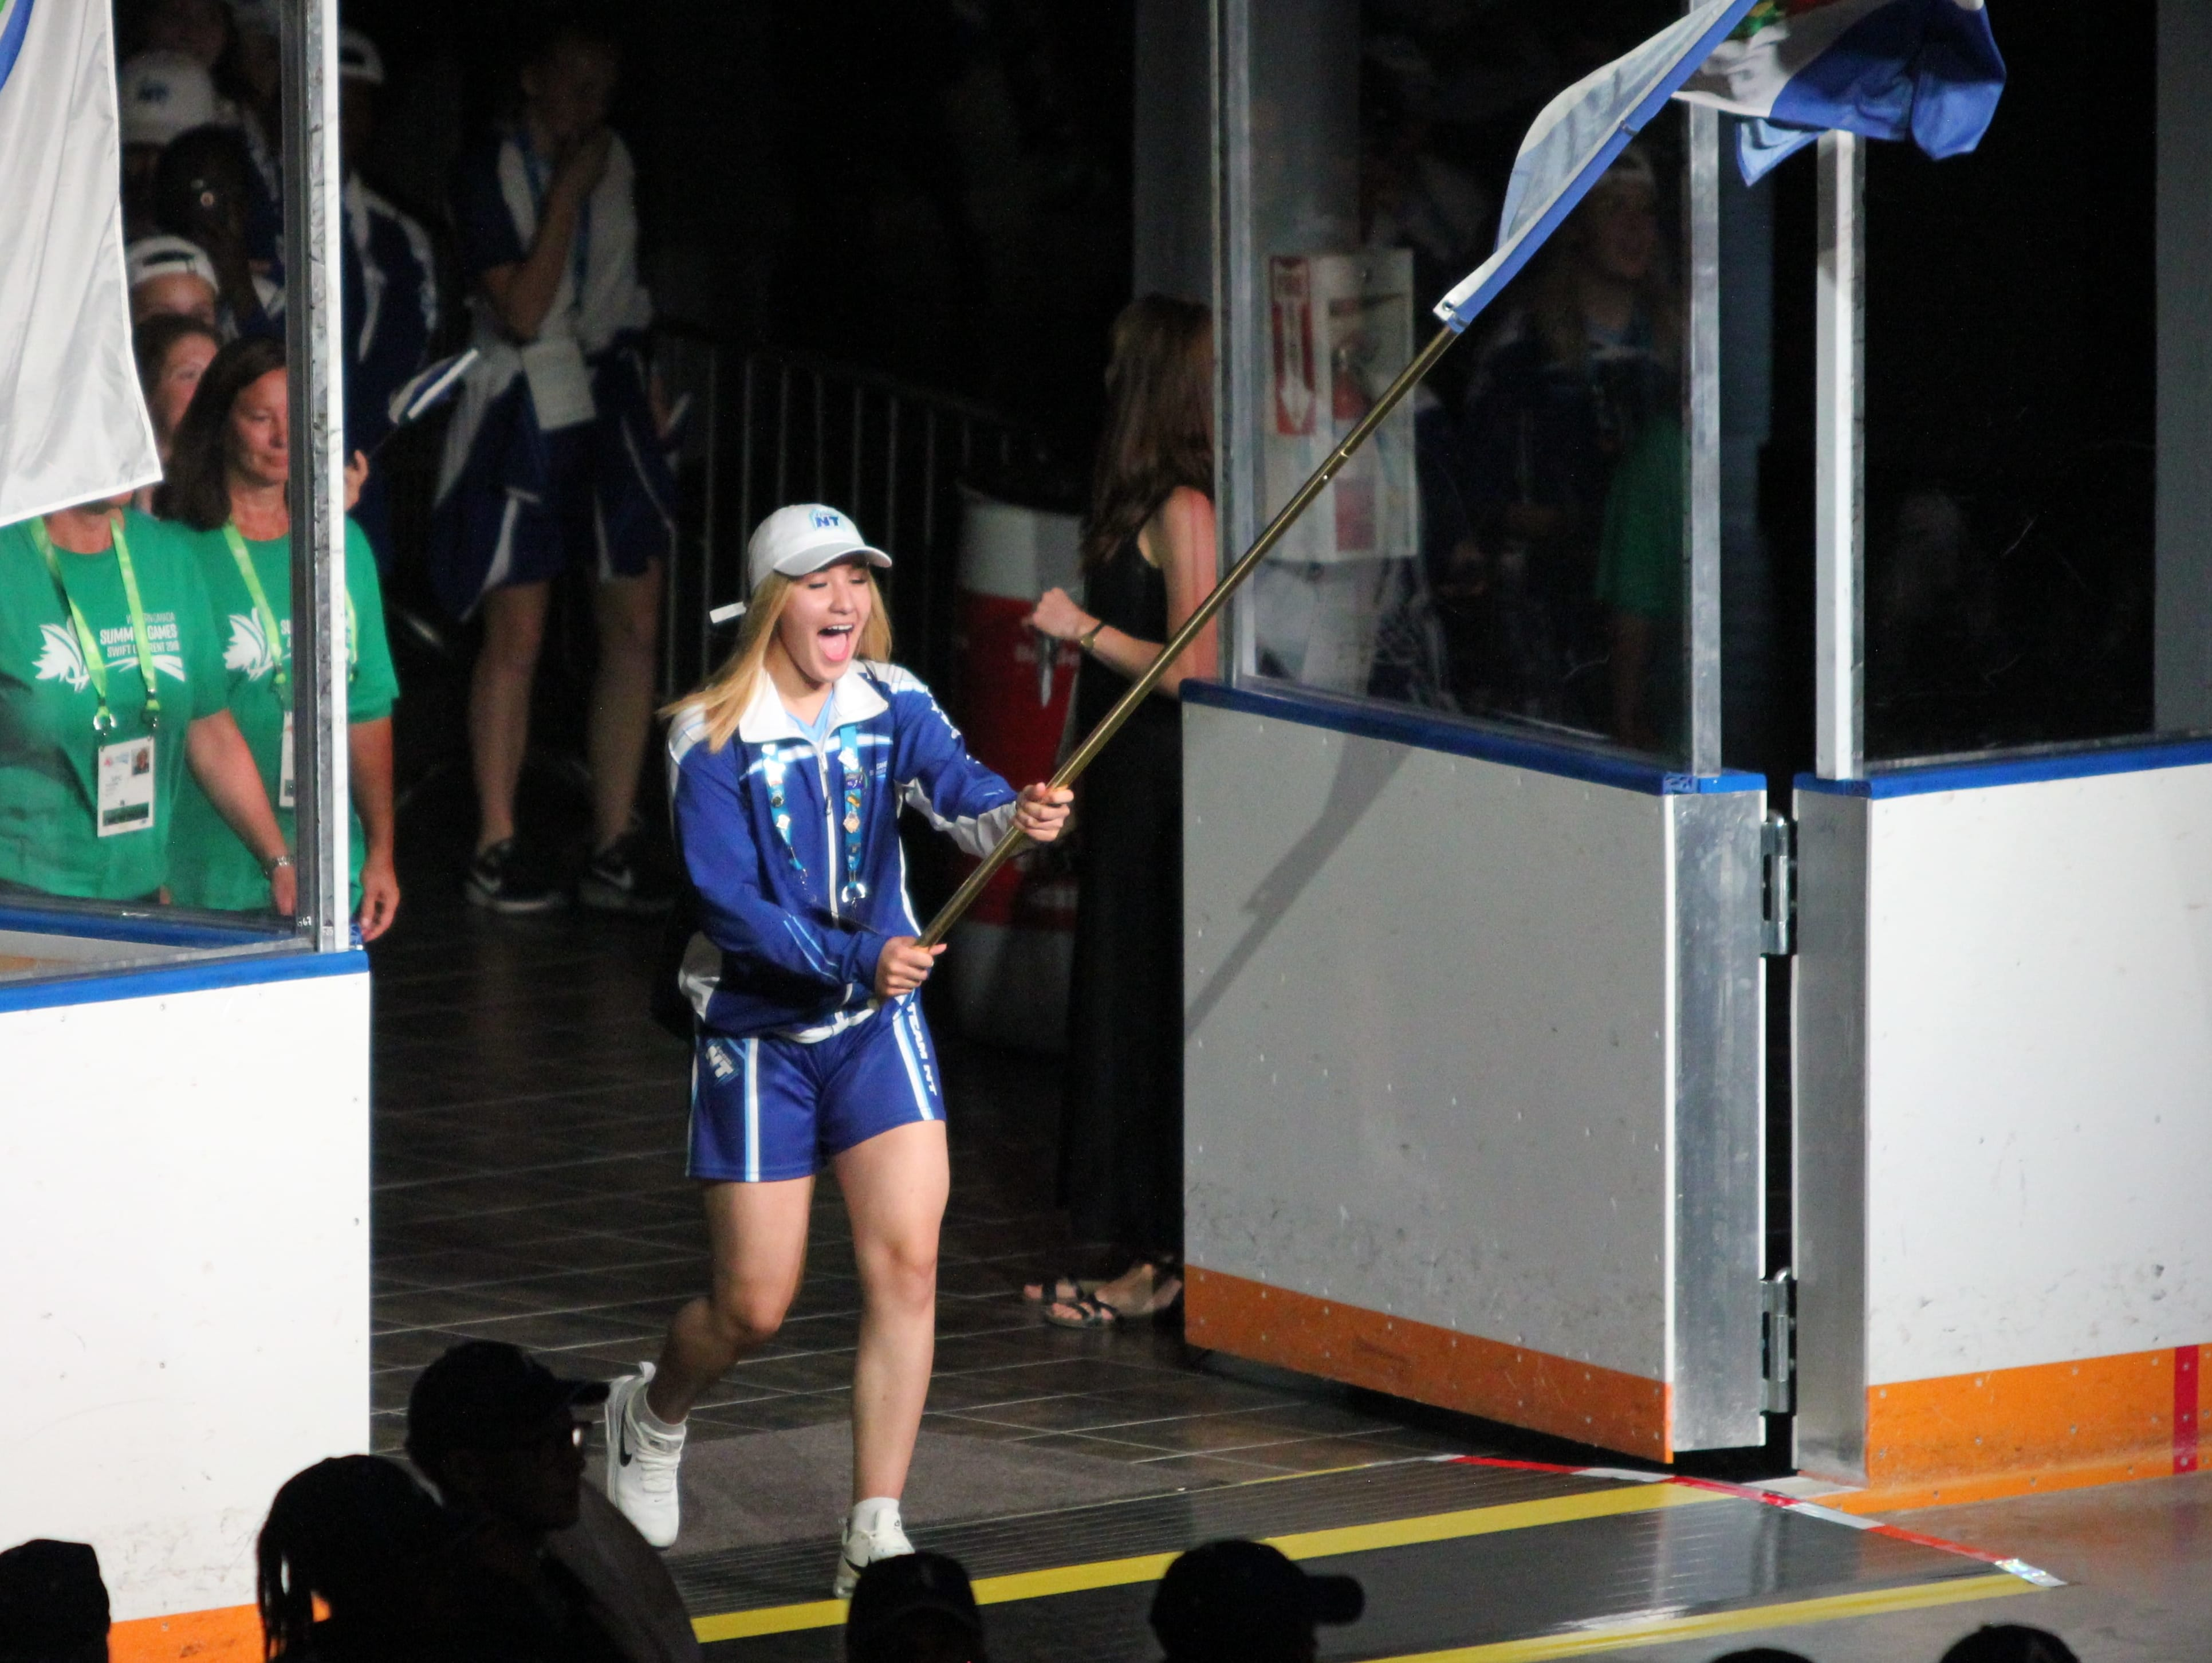 Naomi Yukon of Deline leads Team NT into the Western Canada Summer Games opening ceremony in Swift Current, Sask., on Friday evening.